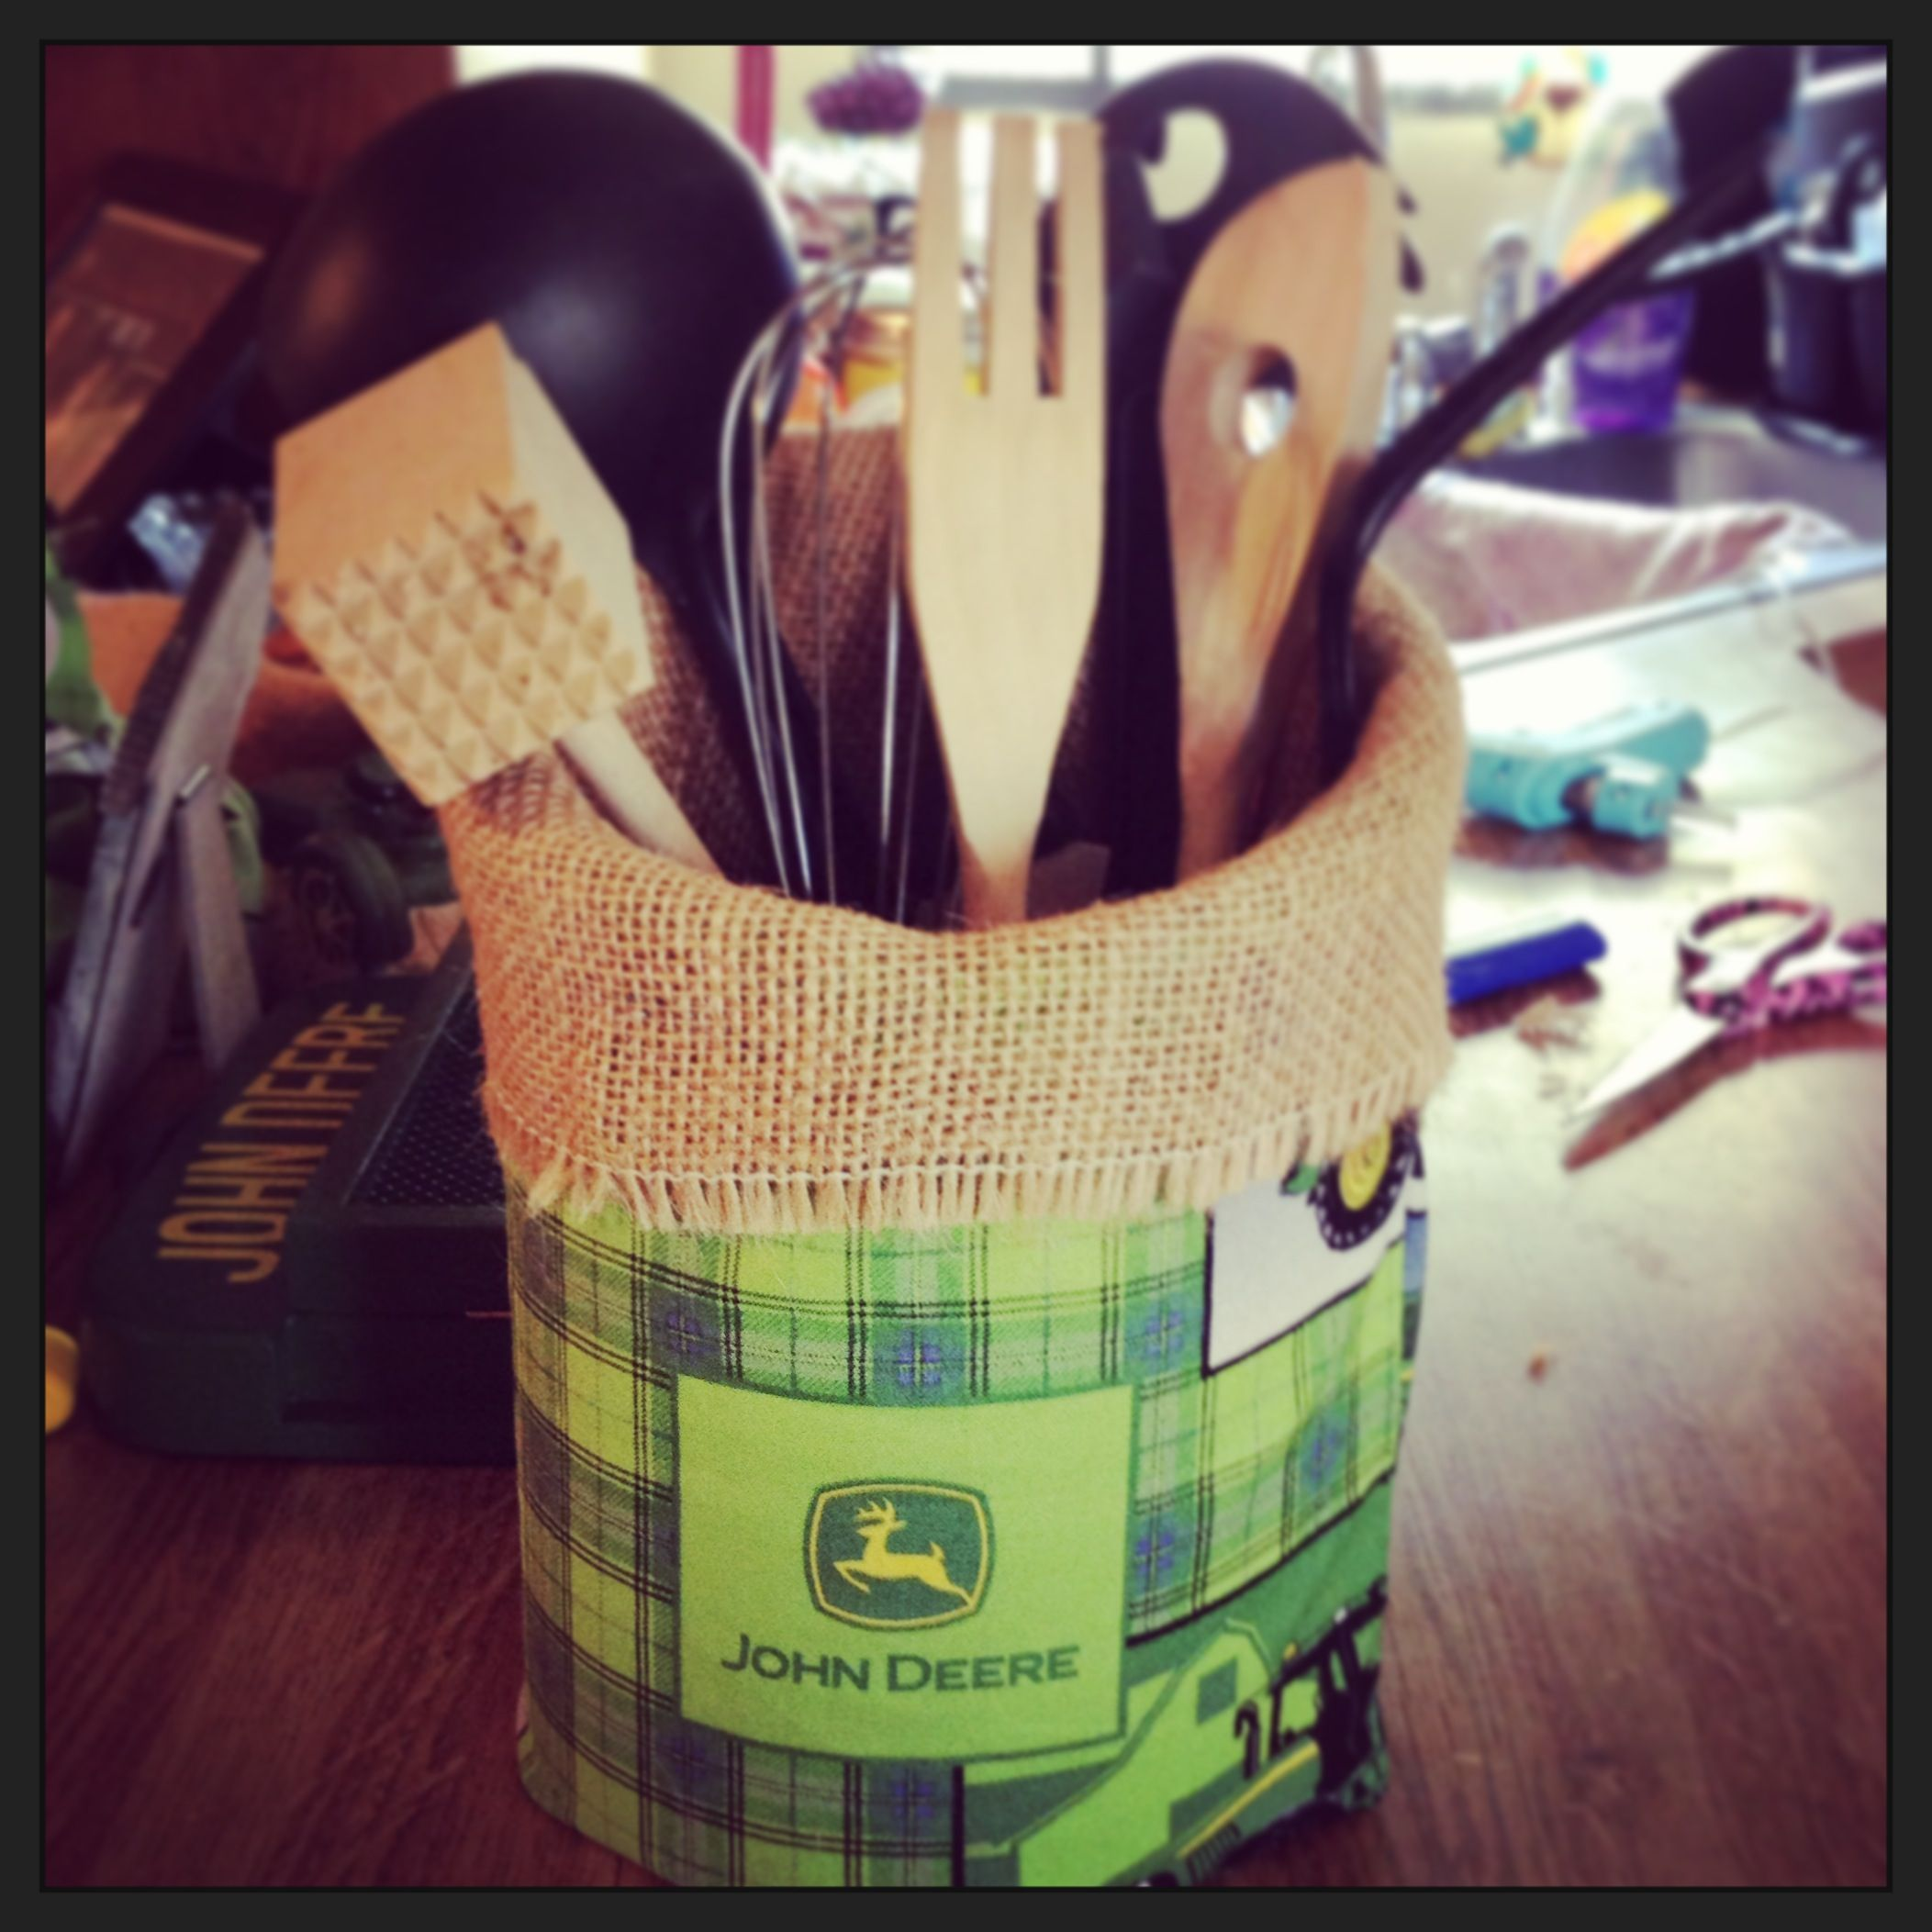 John deer utensil holder Crafts Pinterest